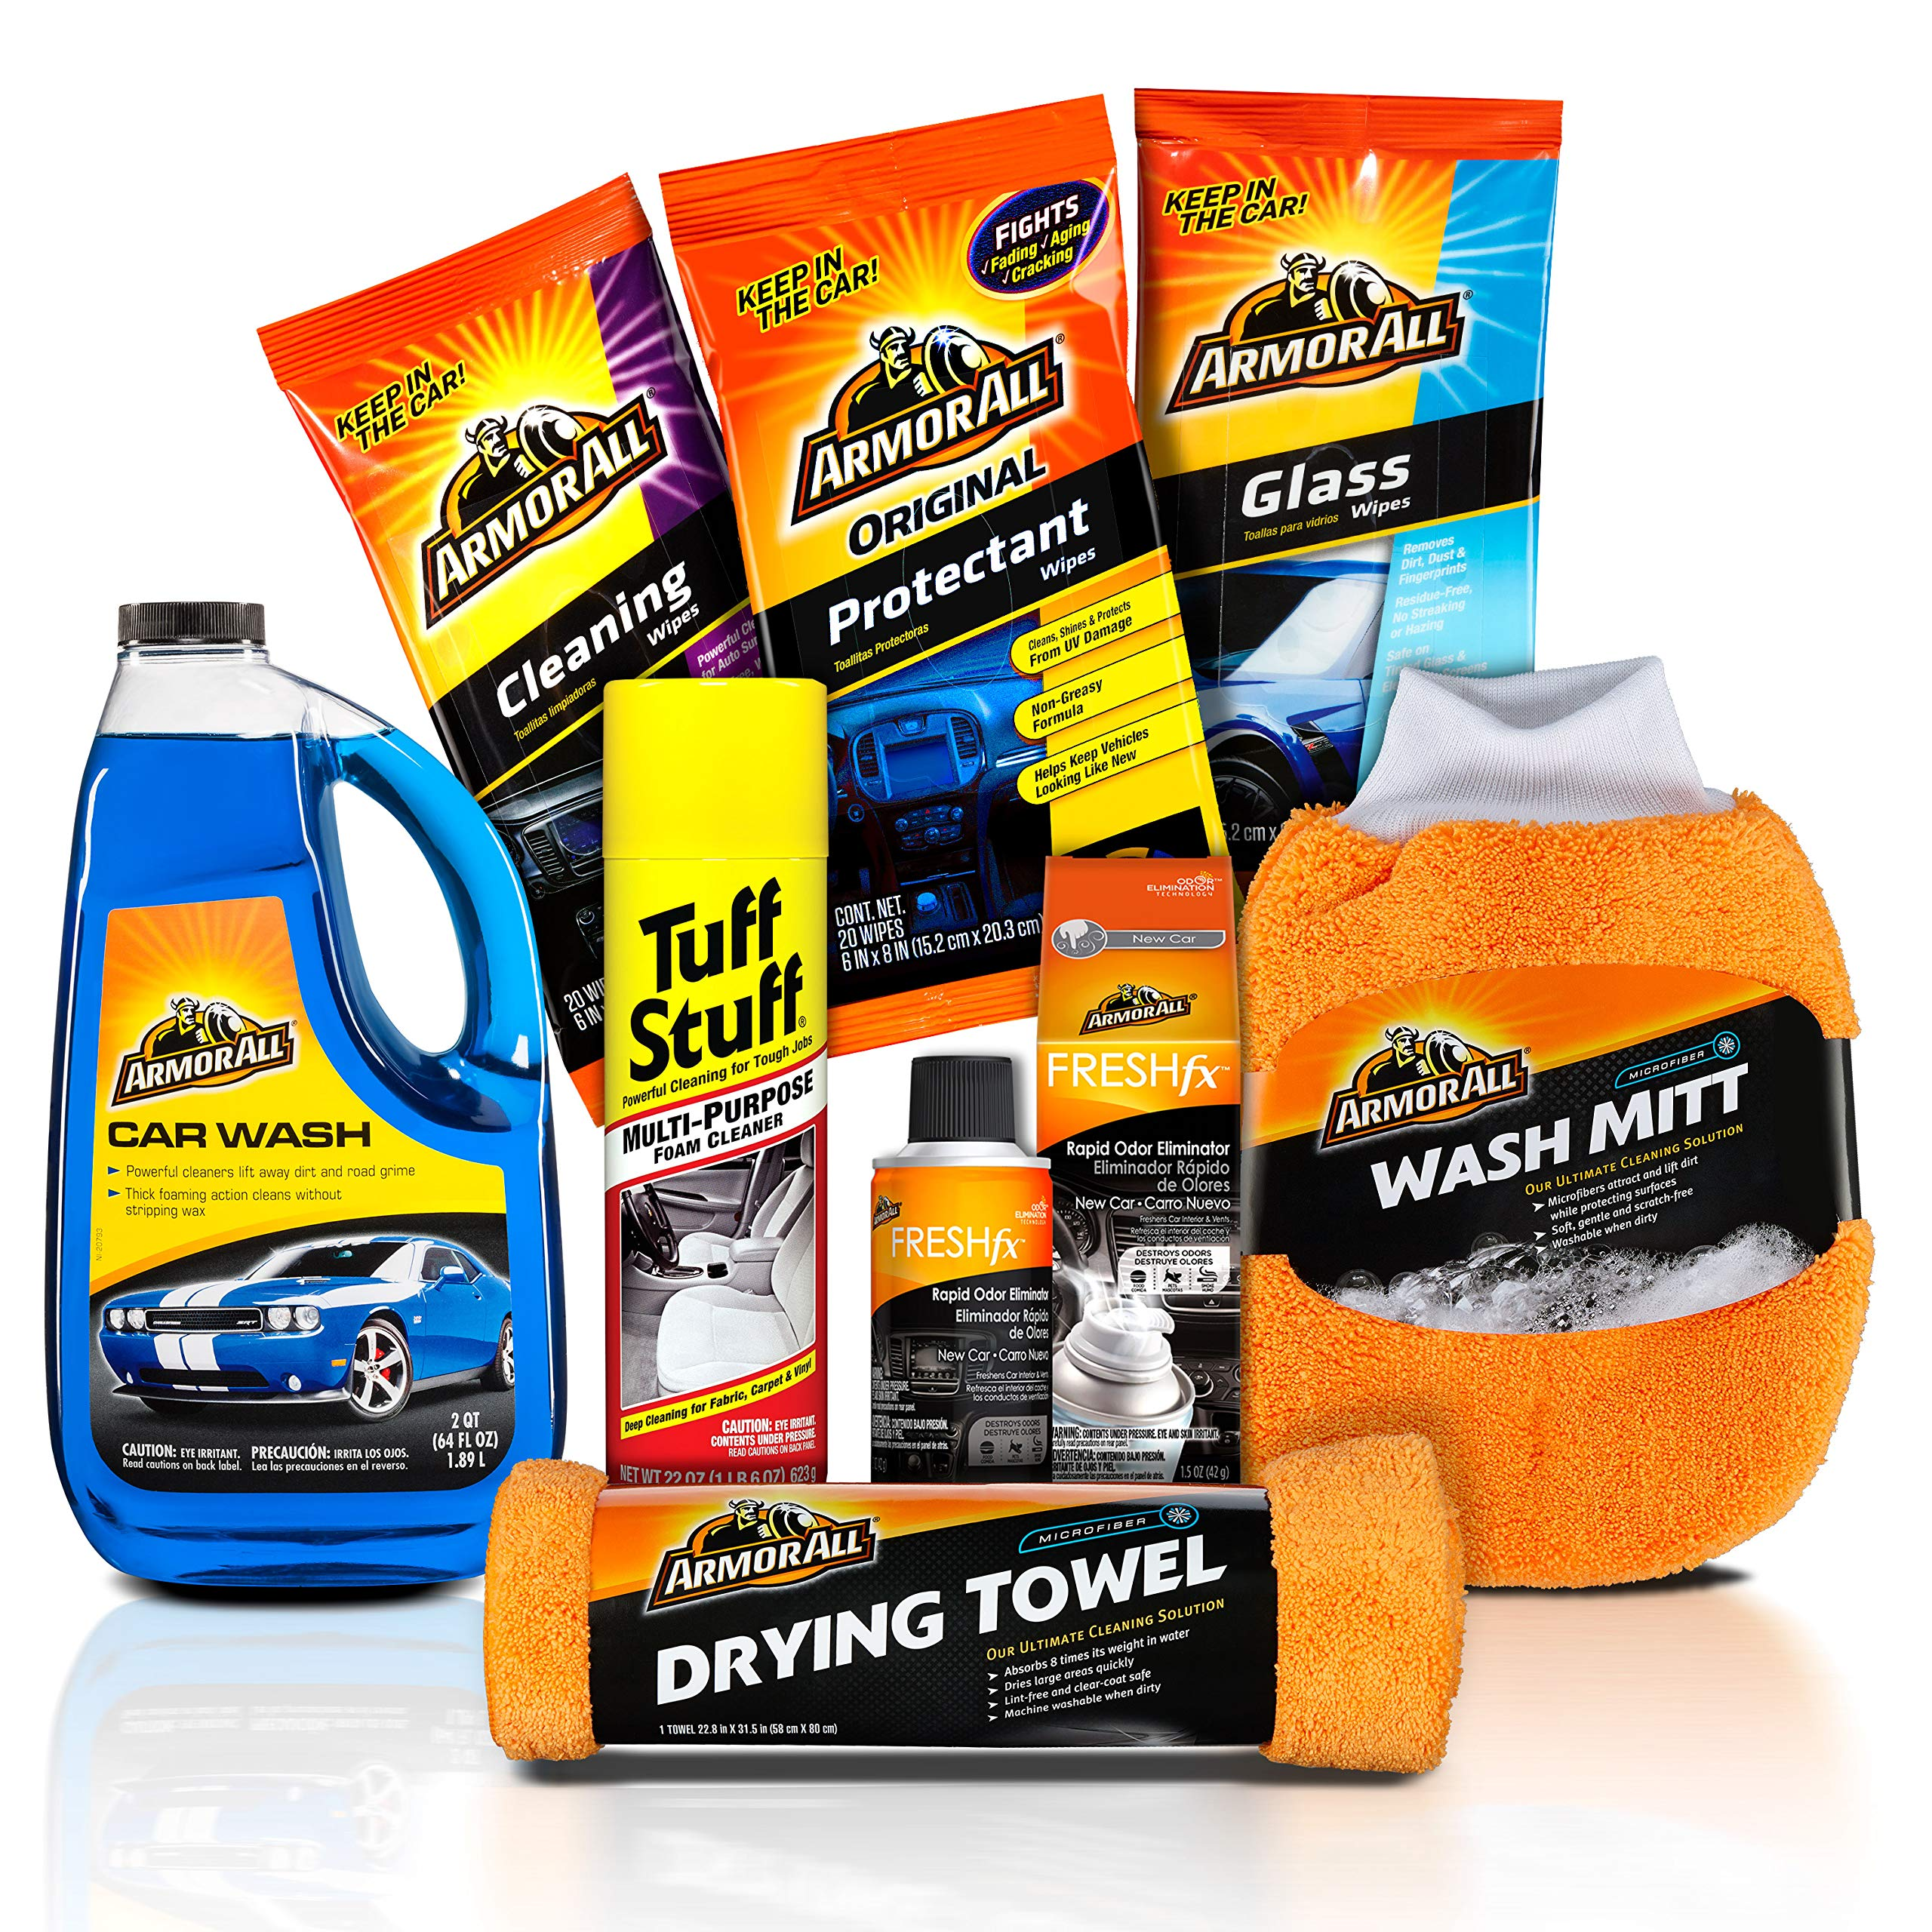 Armor All and Tuff Stuff New-to-You Used Car Cleaning Kit (8 items)